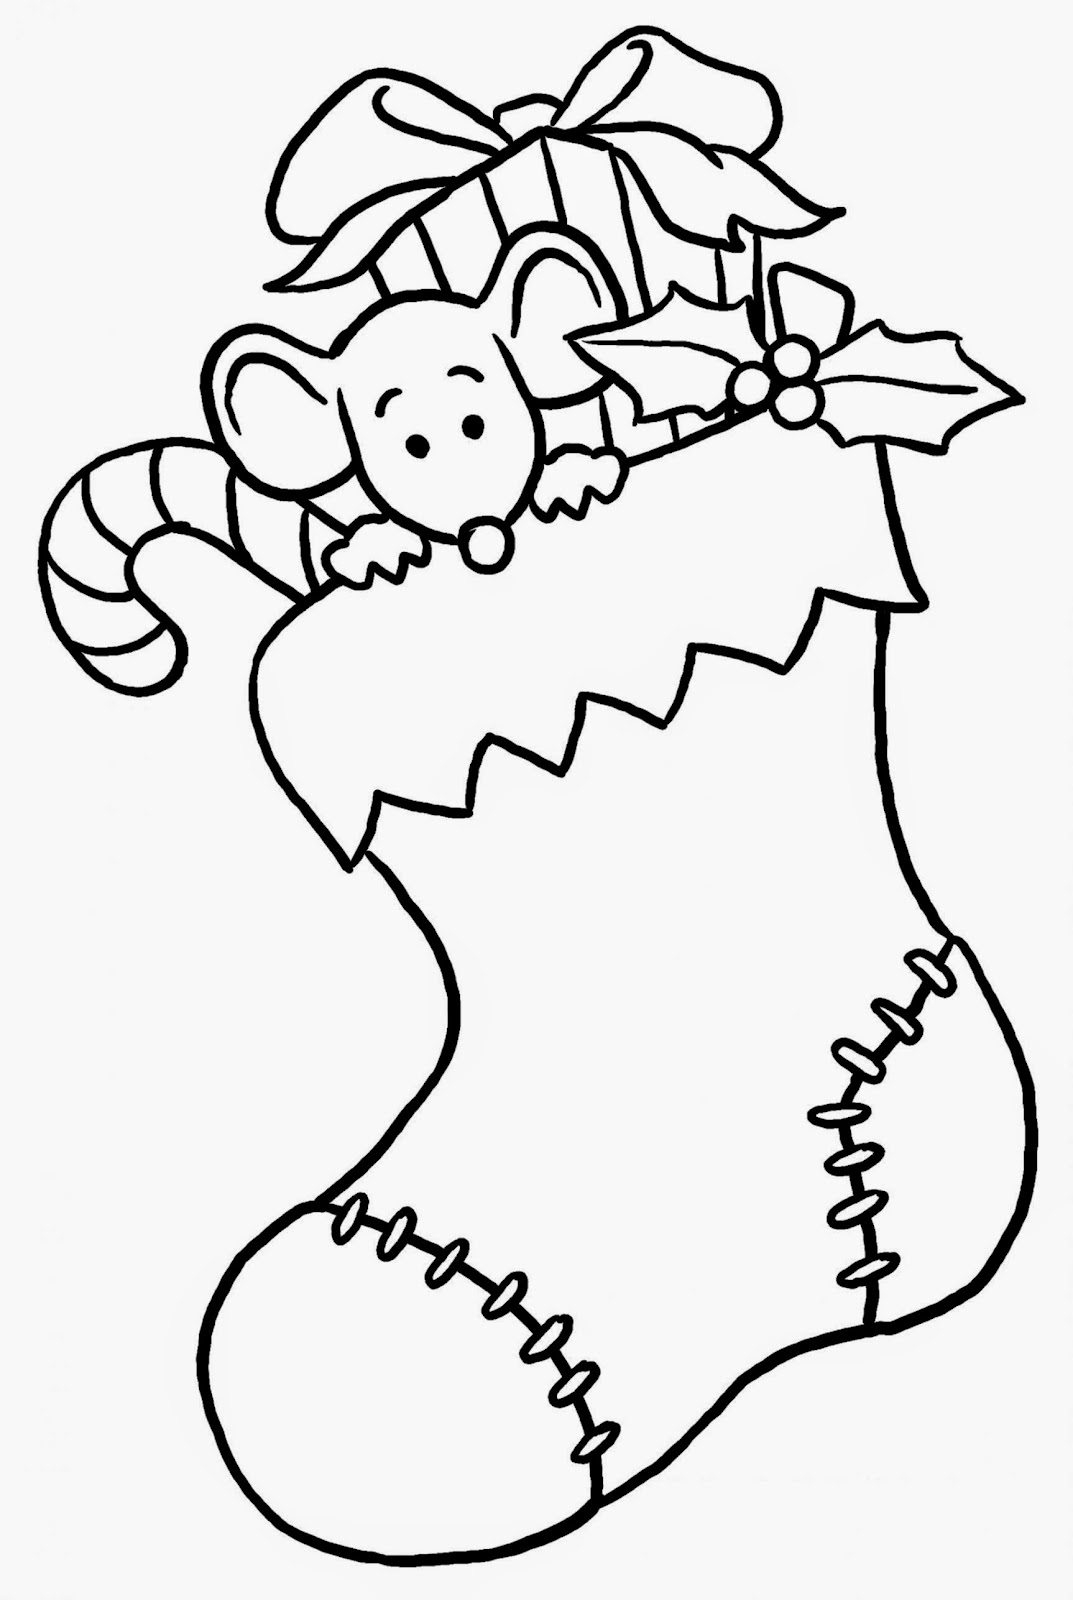 q coloring pages for preschool - photo #40